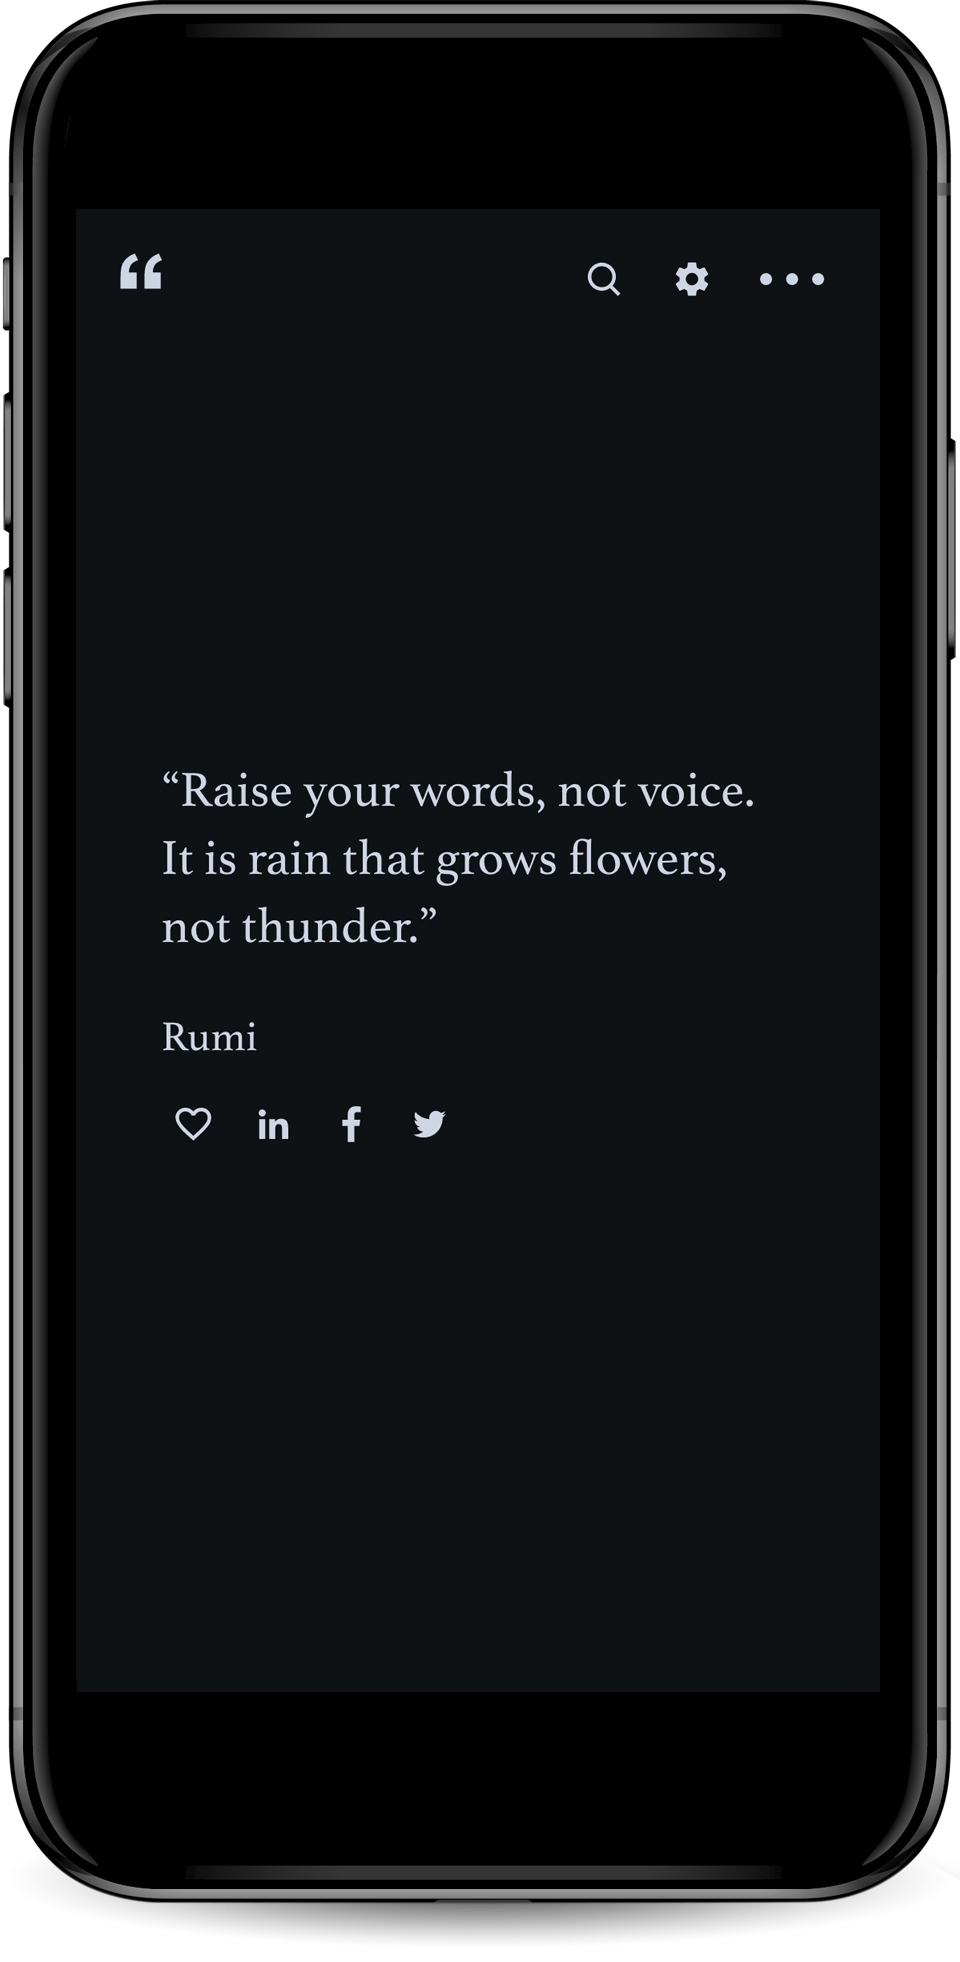 Words of Wisdom - Mobile App